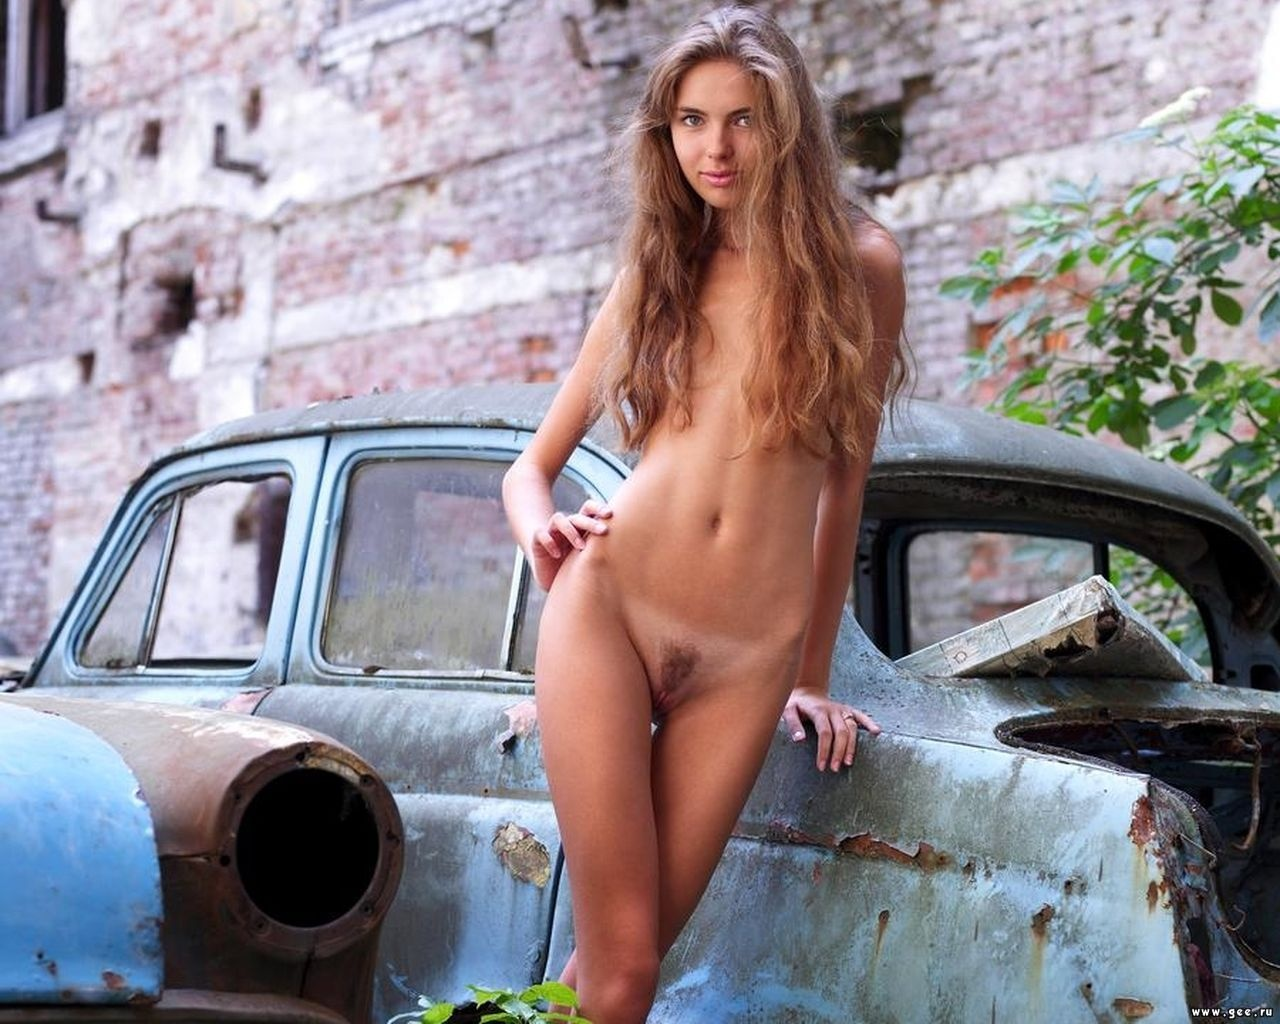 Wallpaper Blonde, Car, Pussy, Naked, Sexy, Tan Lines, Alya -3019